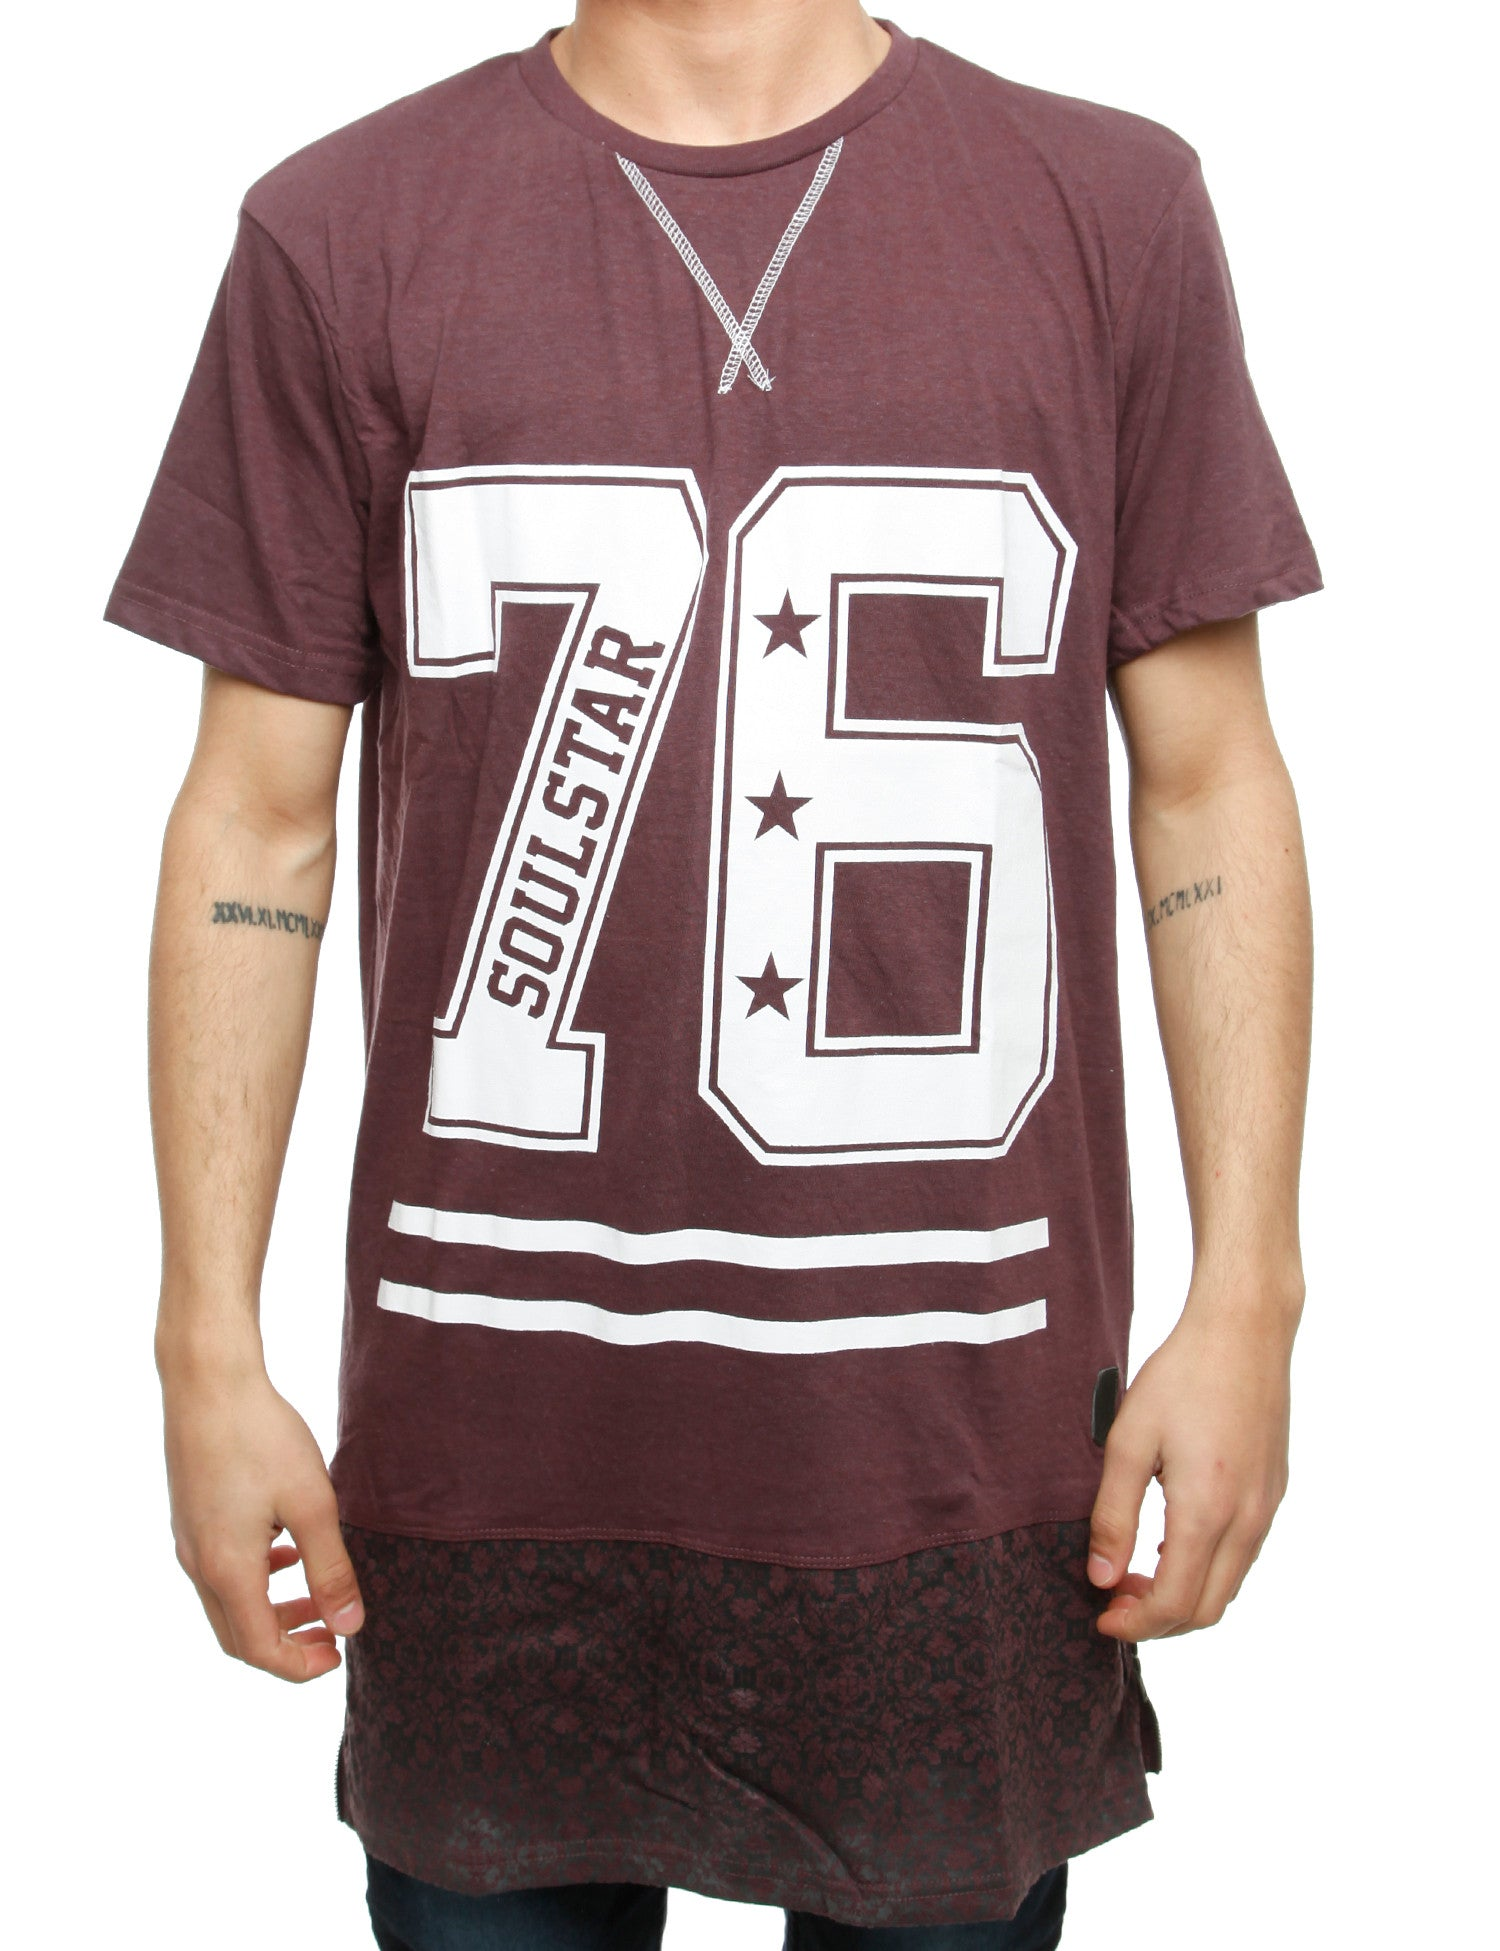 Soul Star Mt Canvy T-Shirt Burgundy Red